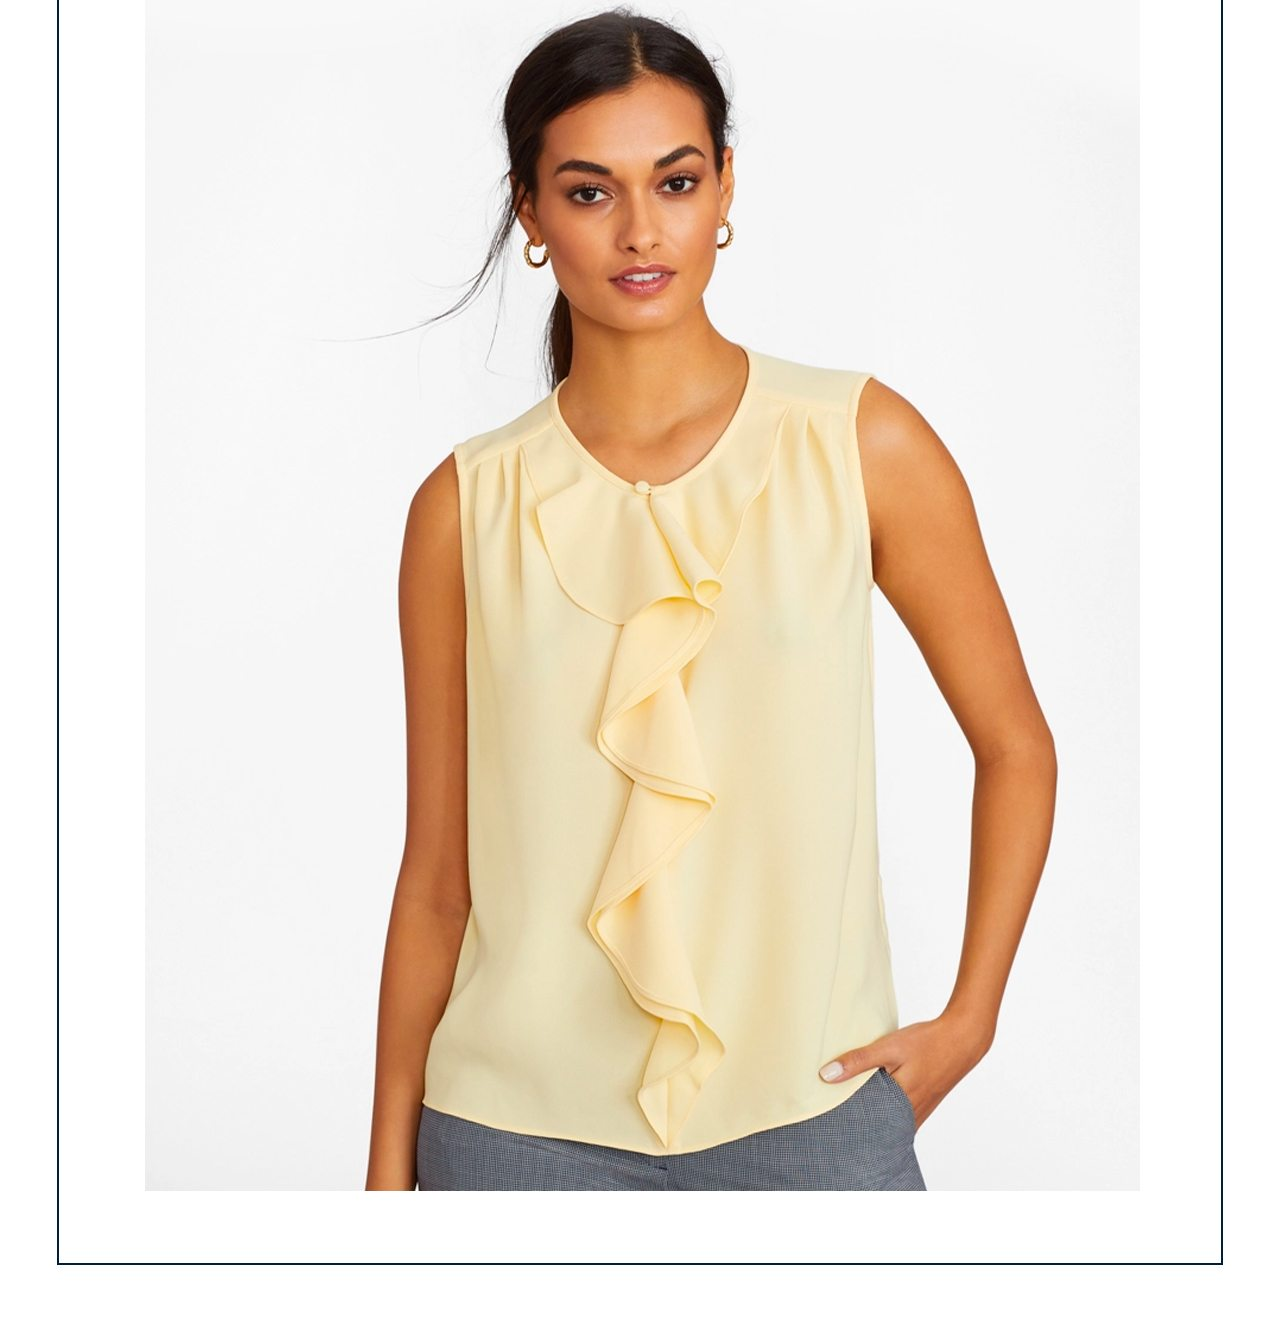 Portraits in Pastels Petal-soft hues, airy ruffles and textural fabrics for the season ahead